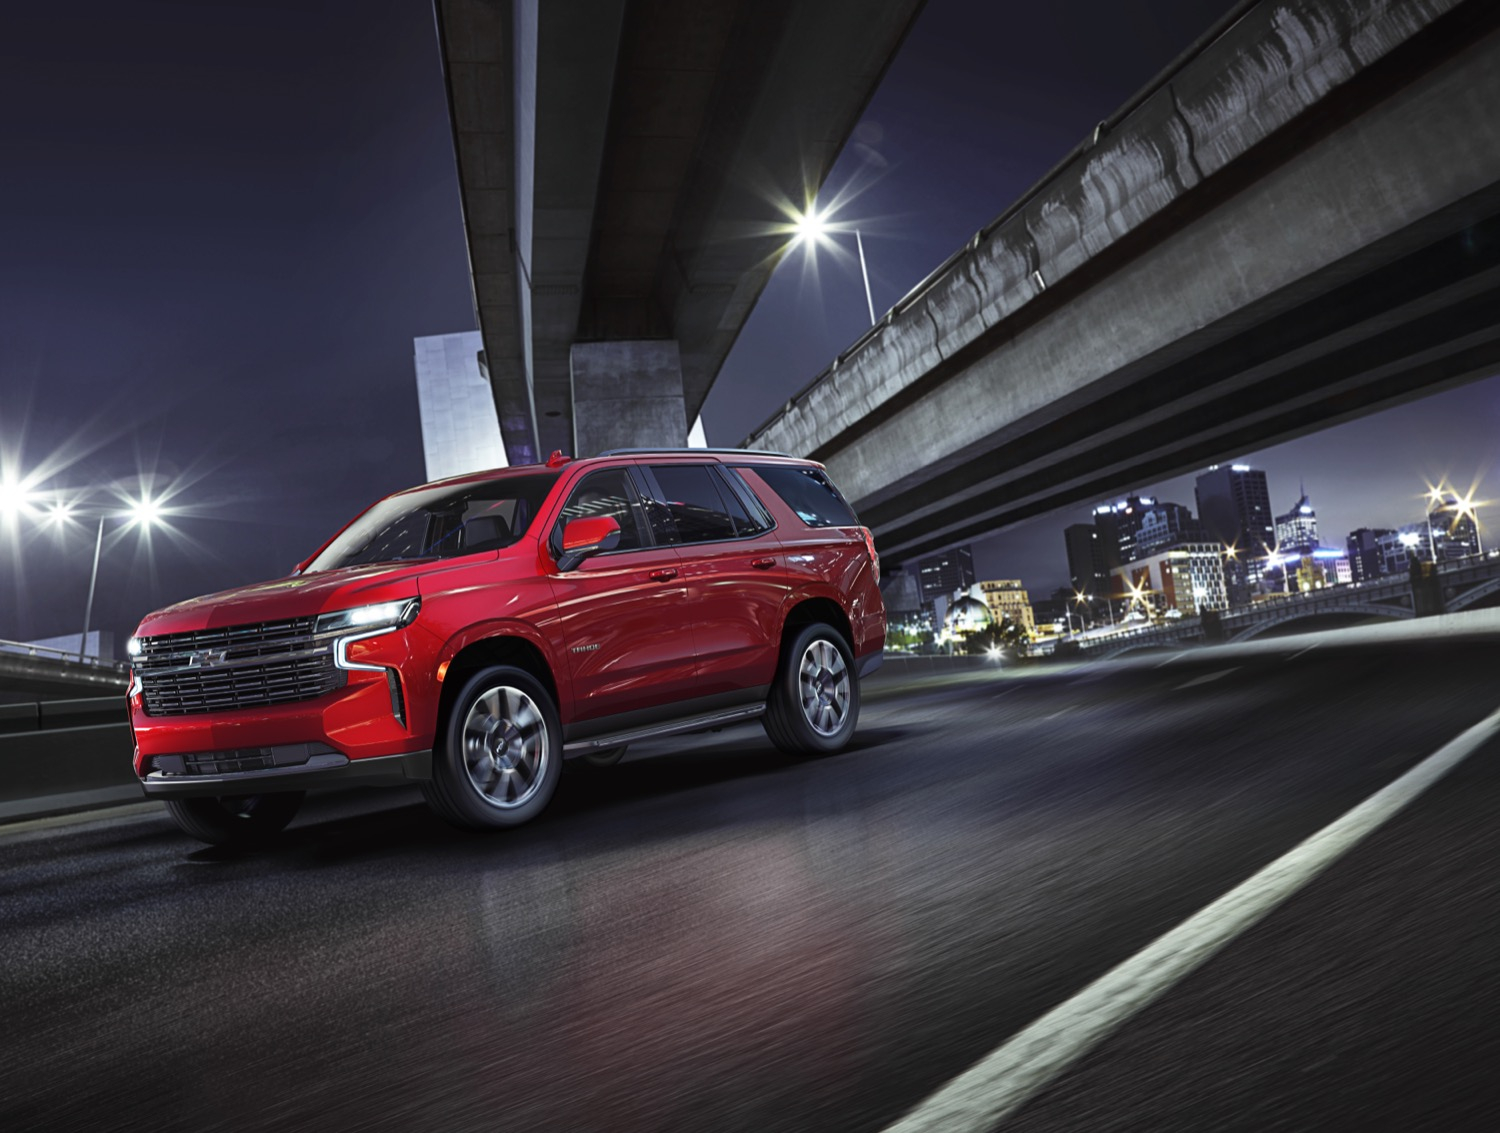 Tow Ratings For 2021 Chevrolet Tahoe, Suburban Unavailable Can A 2021 Chevy Spark Be Flat Towed